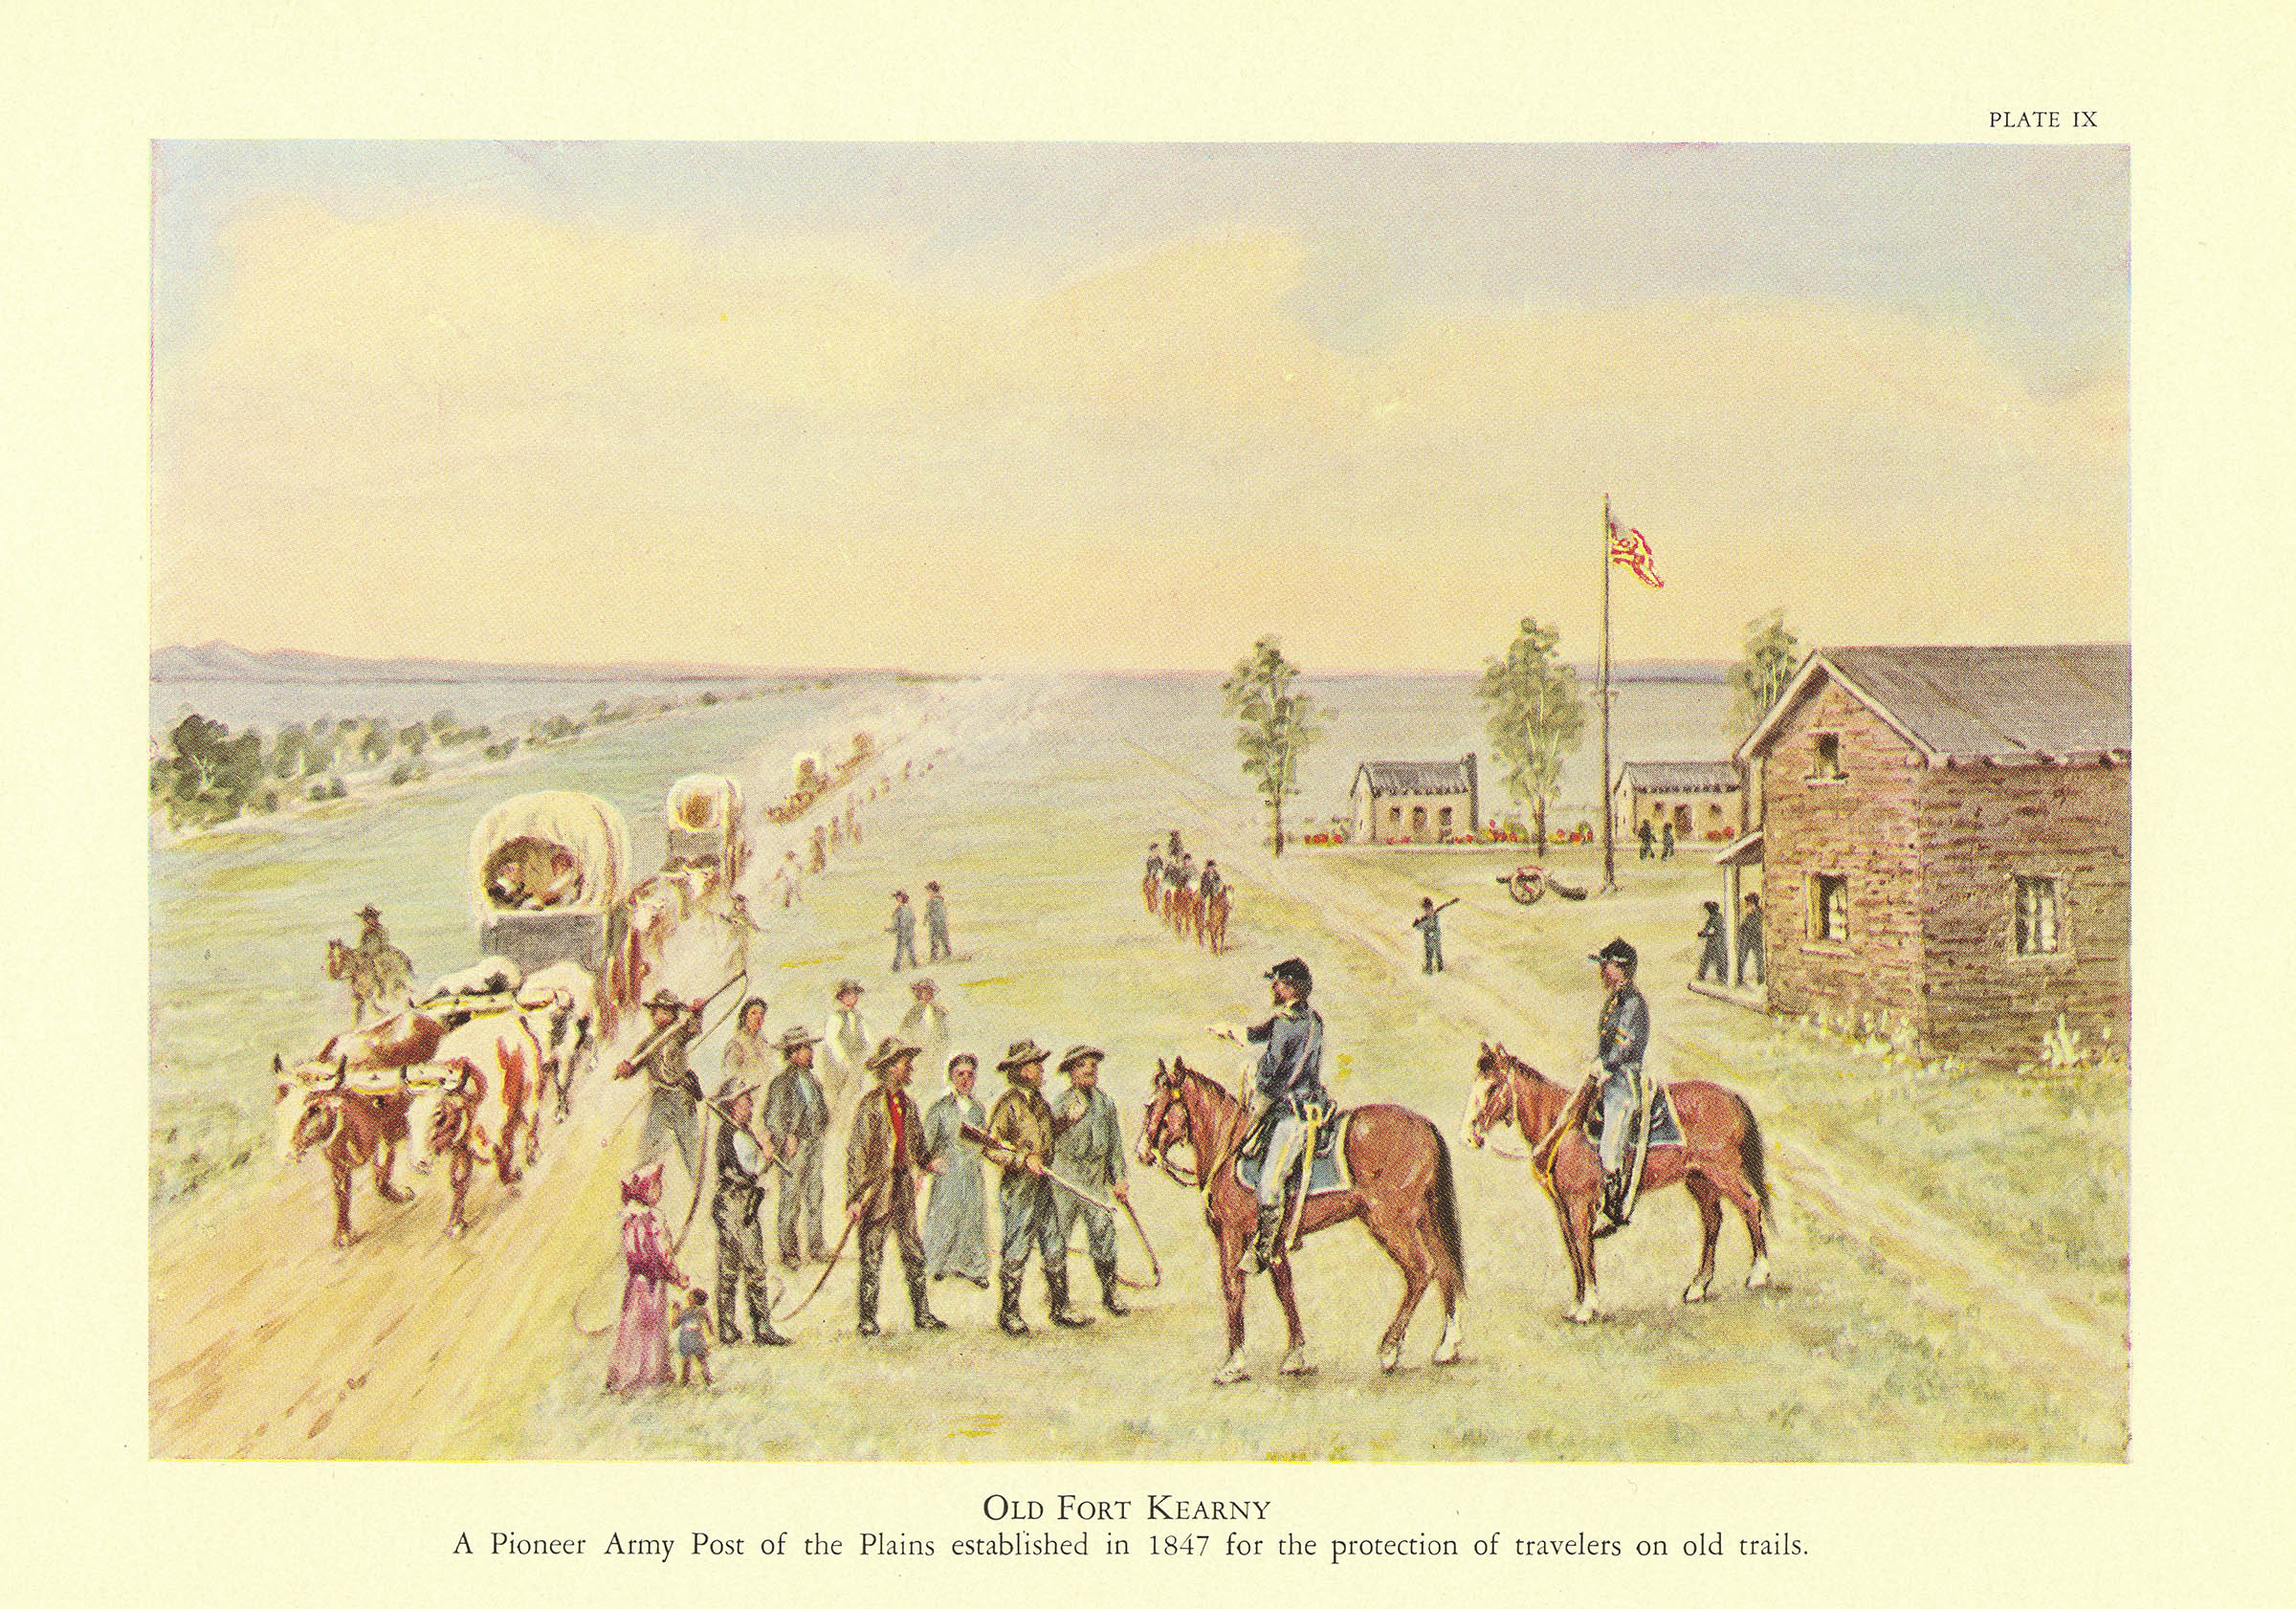 Fort Kearny (Brigham Young University Harold B. Lee Library)